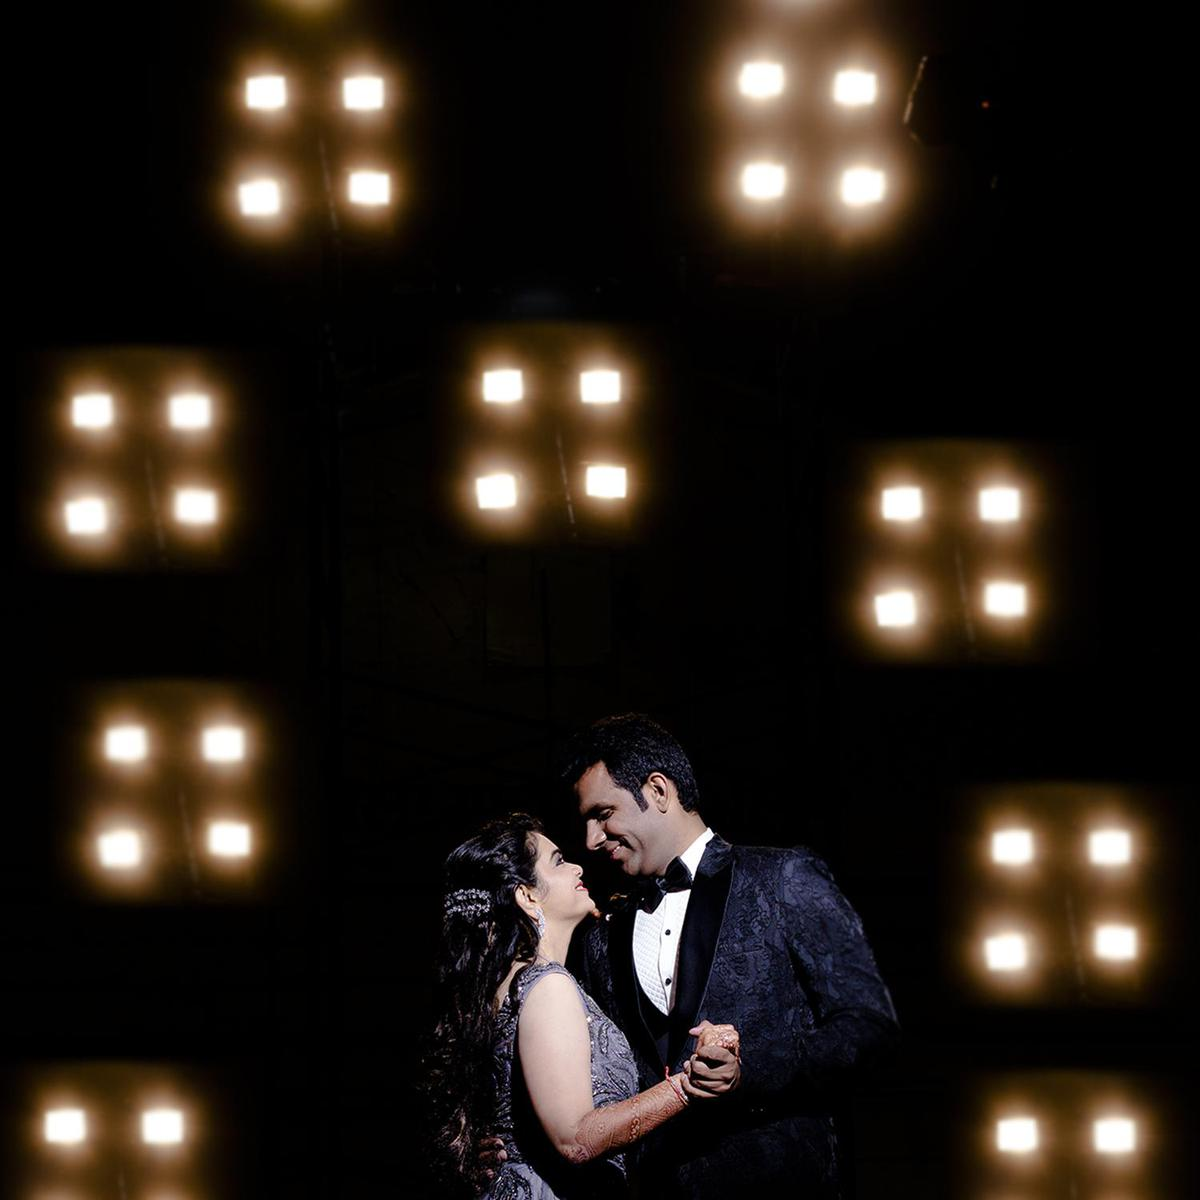 Image of Photograph, Light, Love, Lighting, Ceremony, Romance etc.